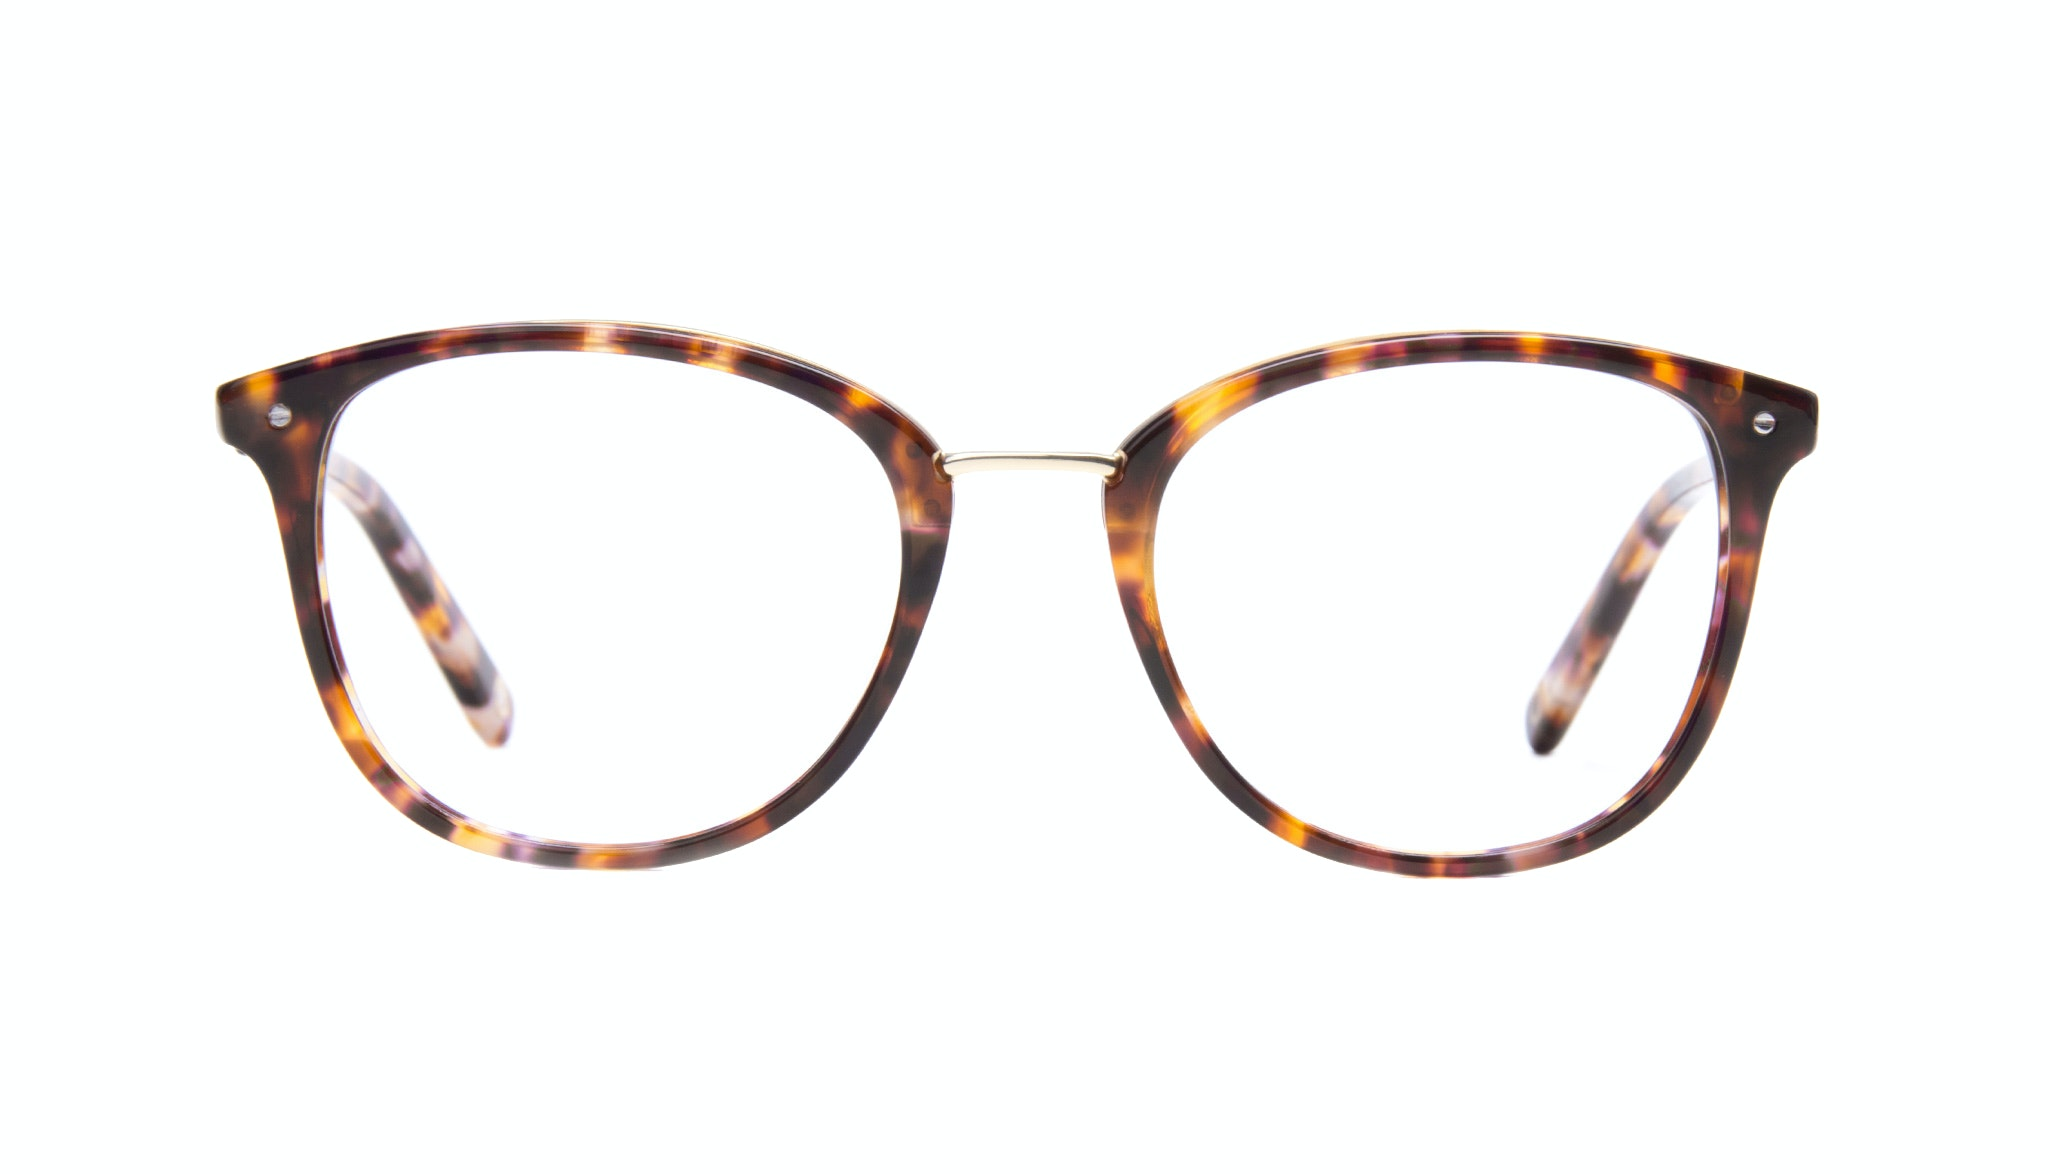 Affordable Fashion Glasses Square Round Eyeglasses Women Ella Dark Tortoise Front